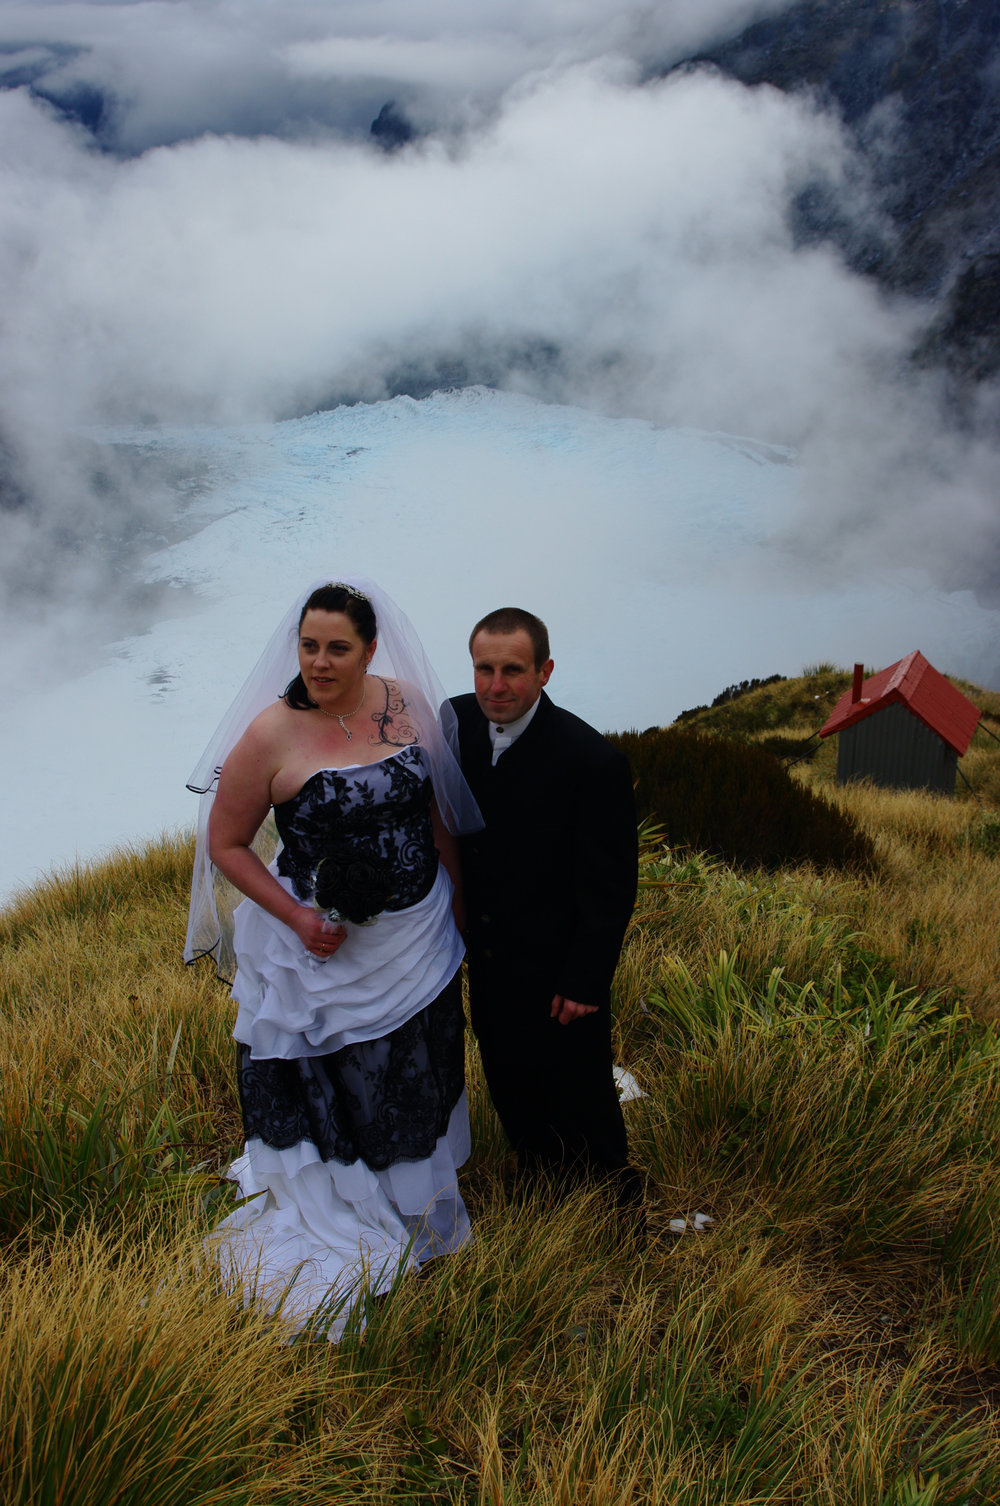 Fly onto a Glacier - Wedding